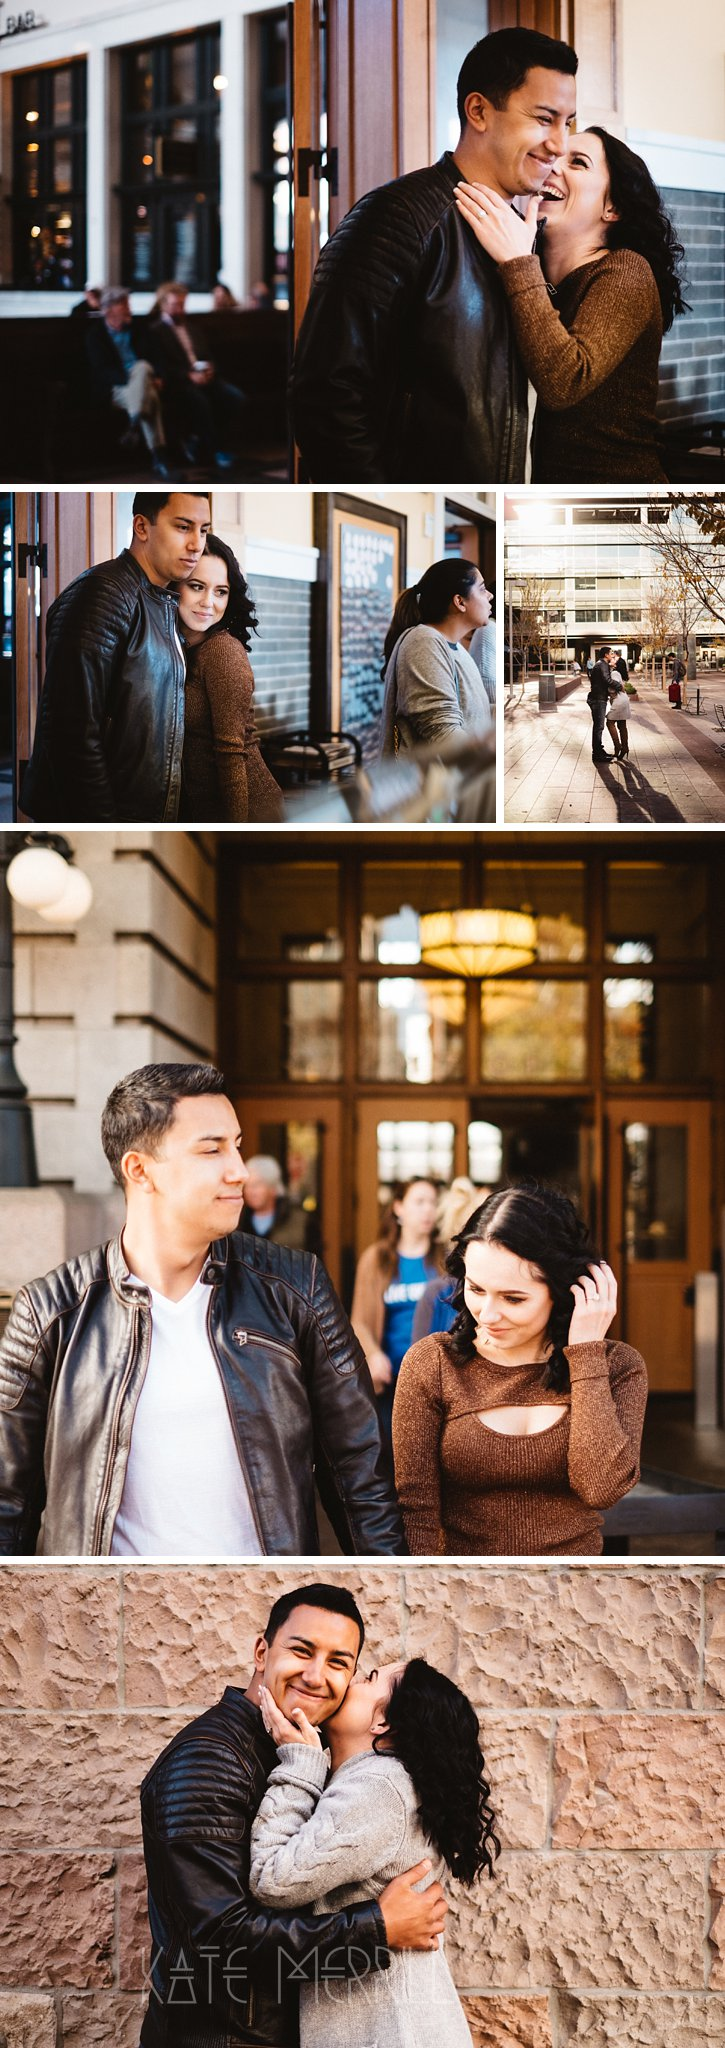 Ilona-Alex-Union-Station-Engagement-Photos-0010_WEB.jpg